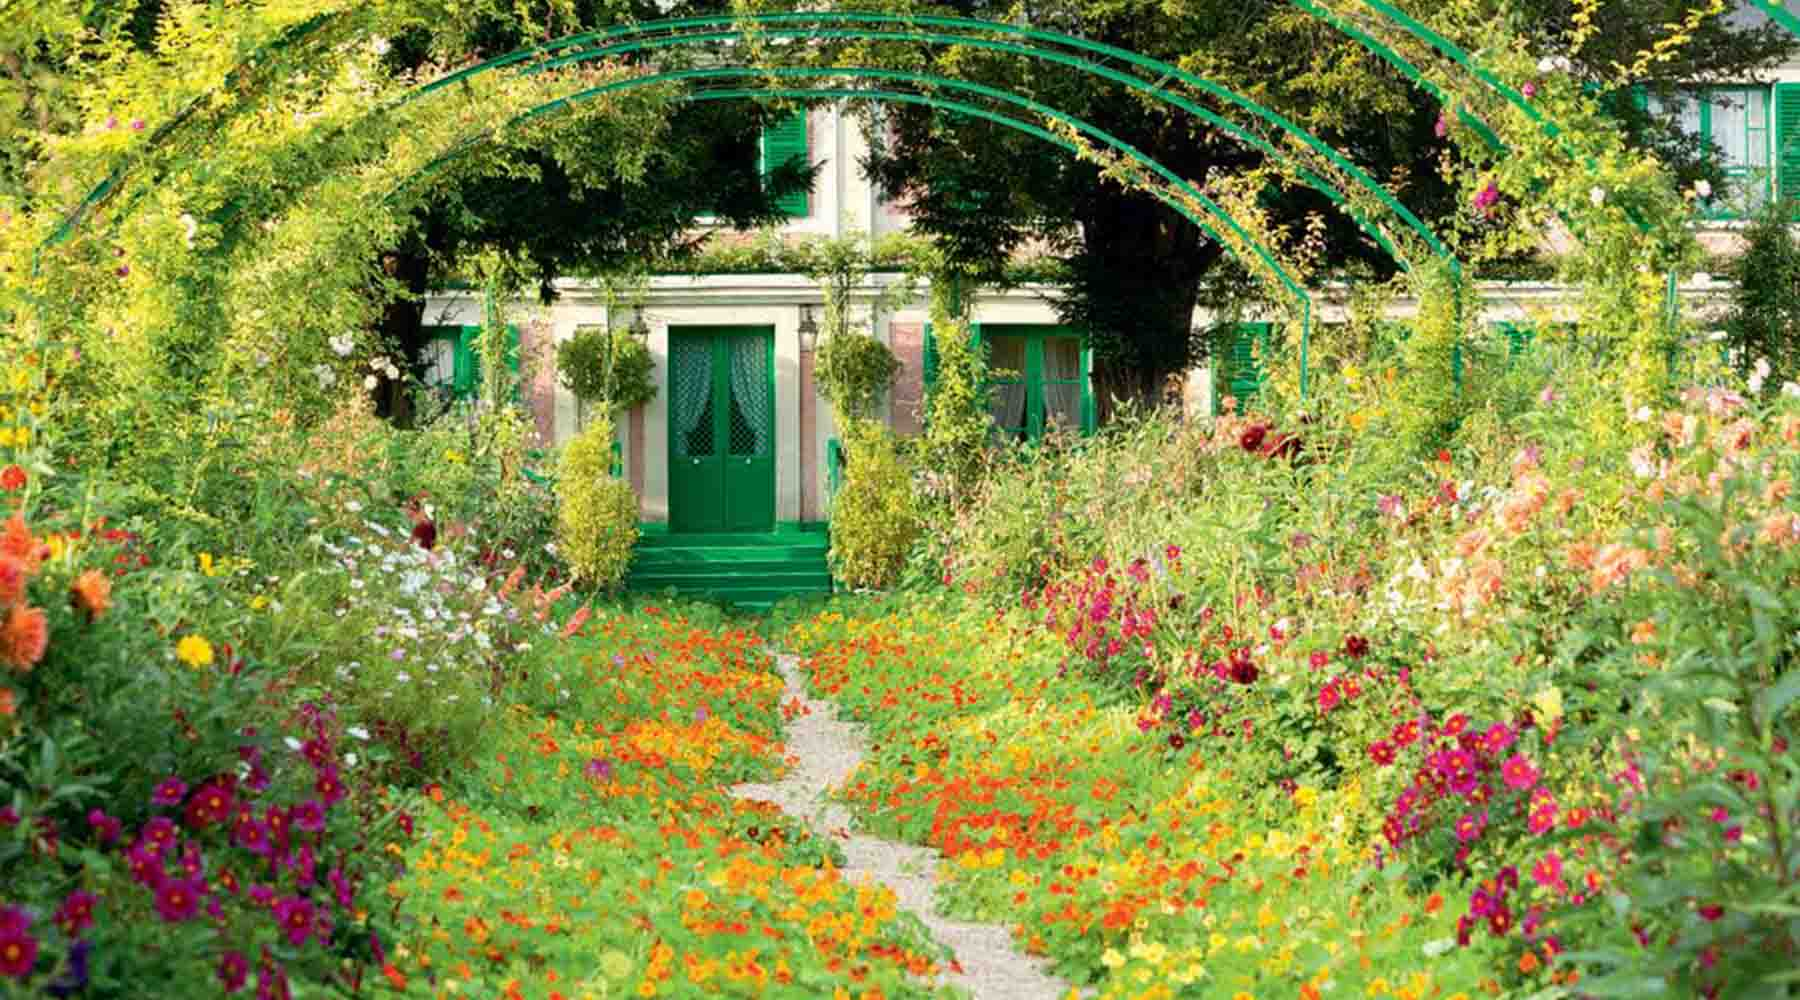 Village de Giverny